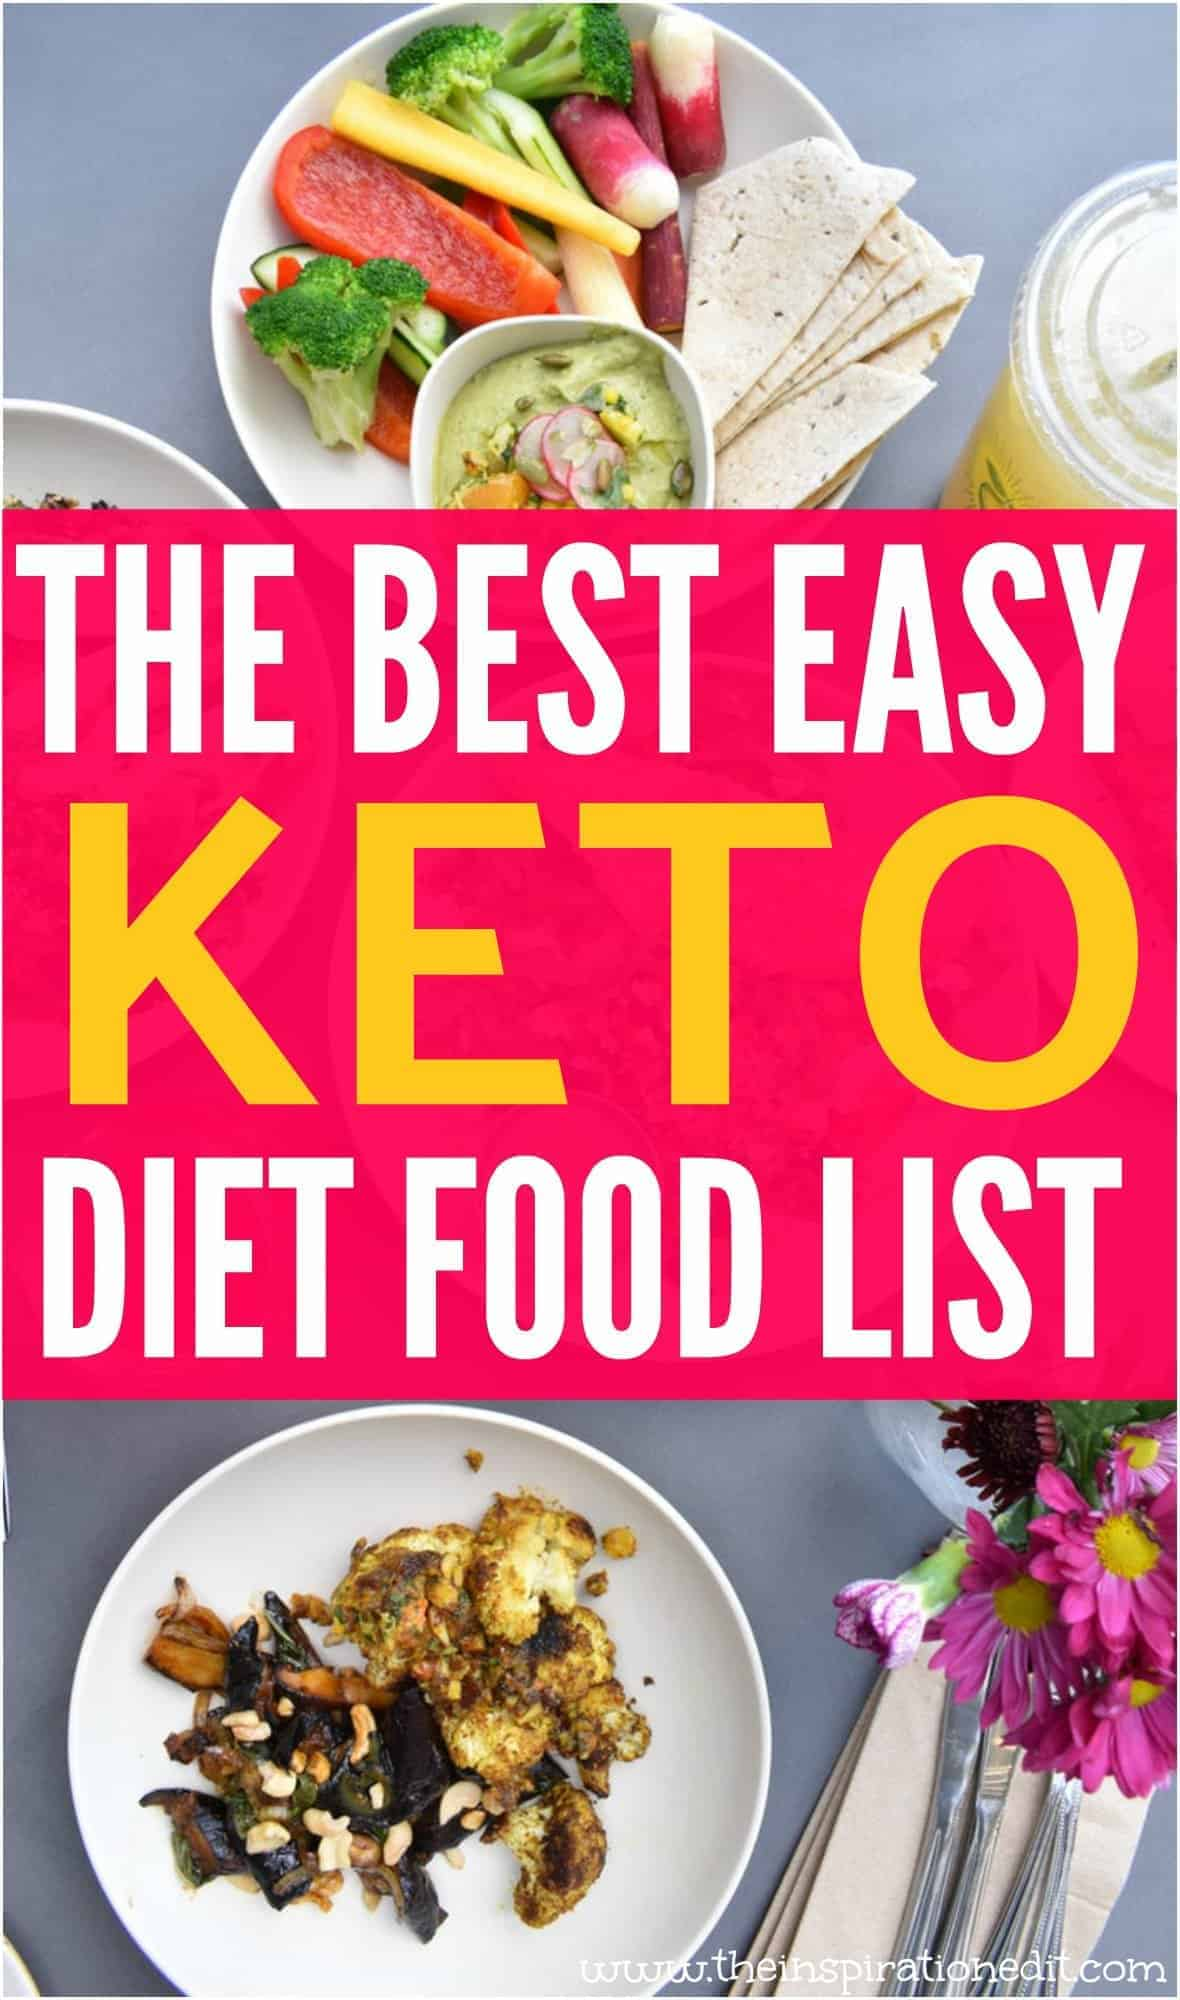 Keto grocery List: What You Need